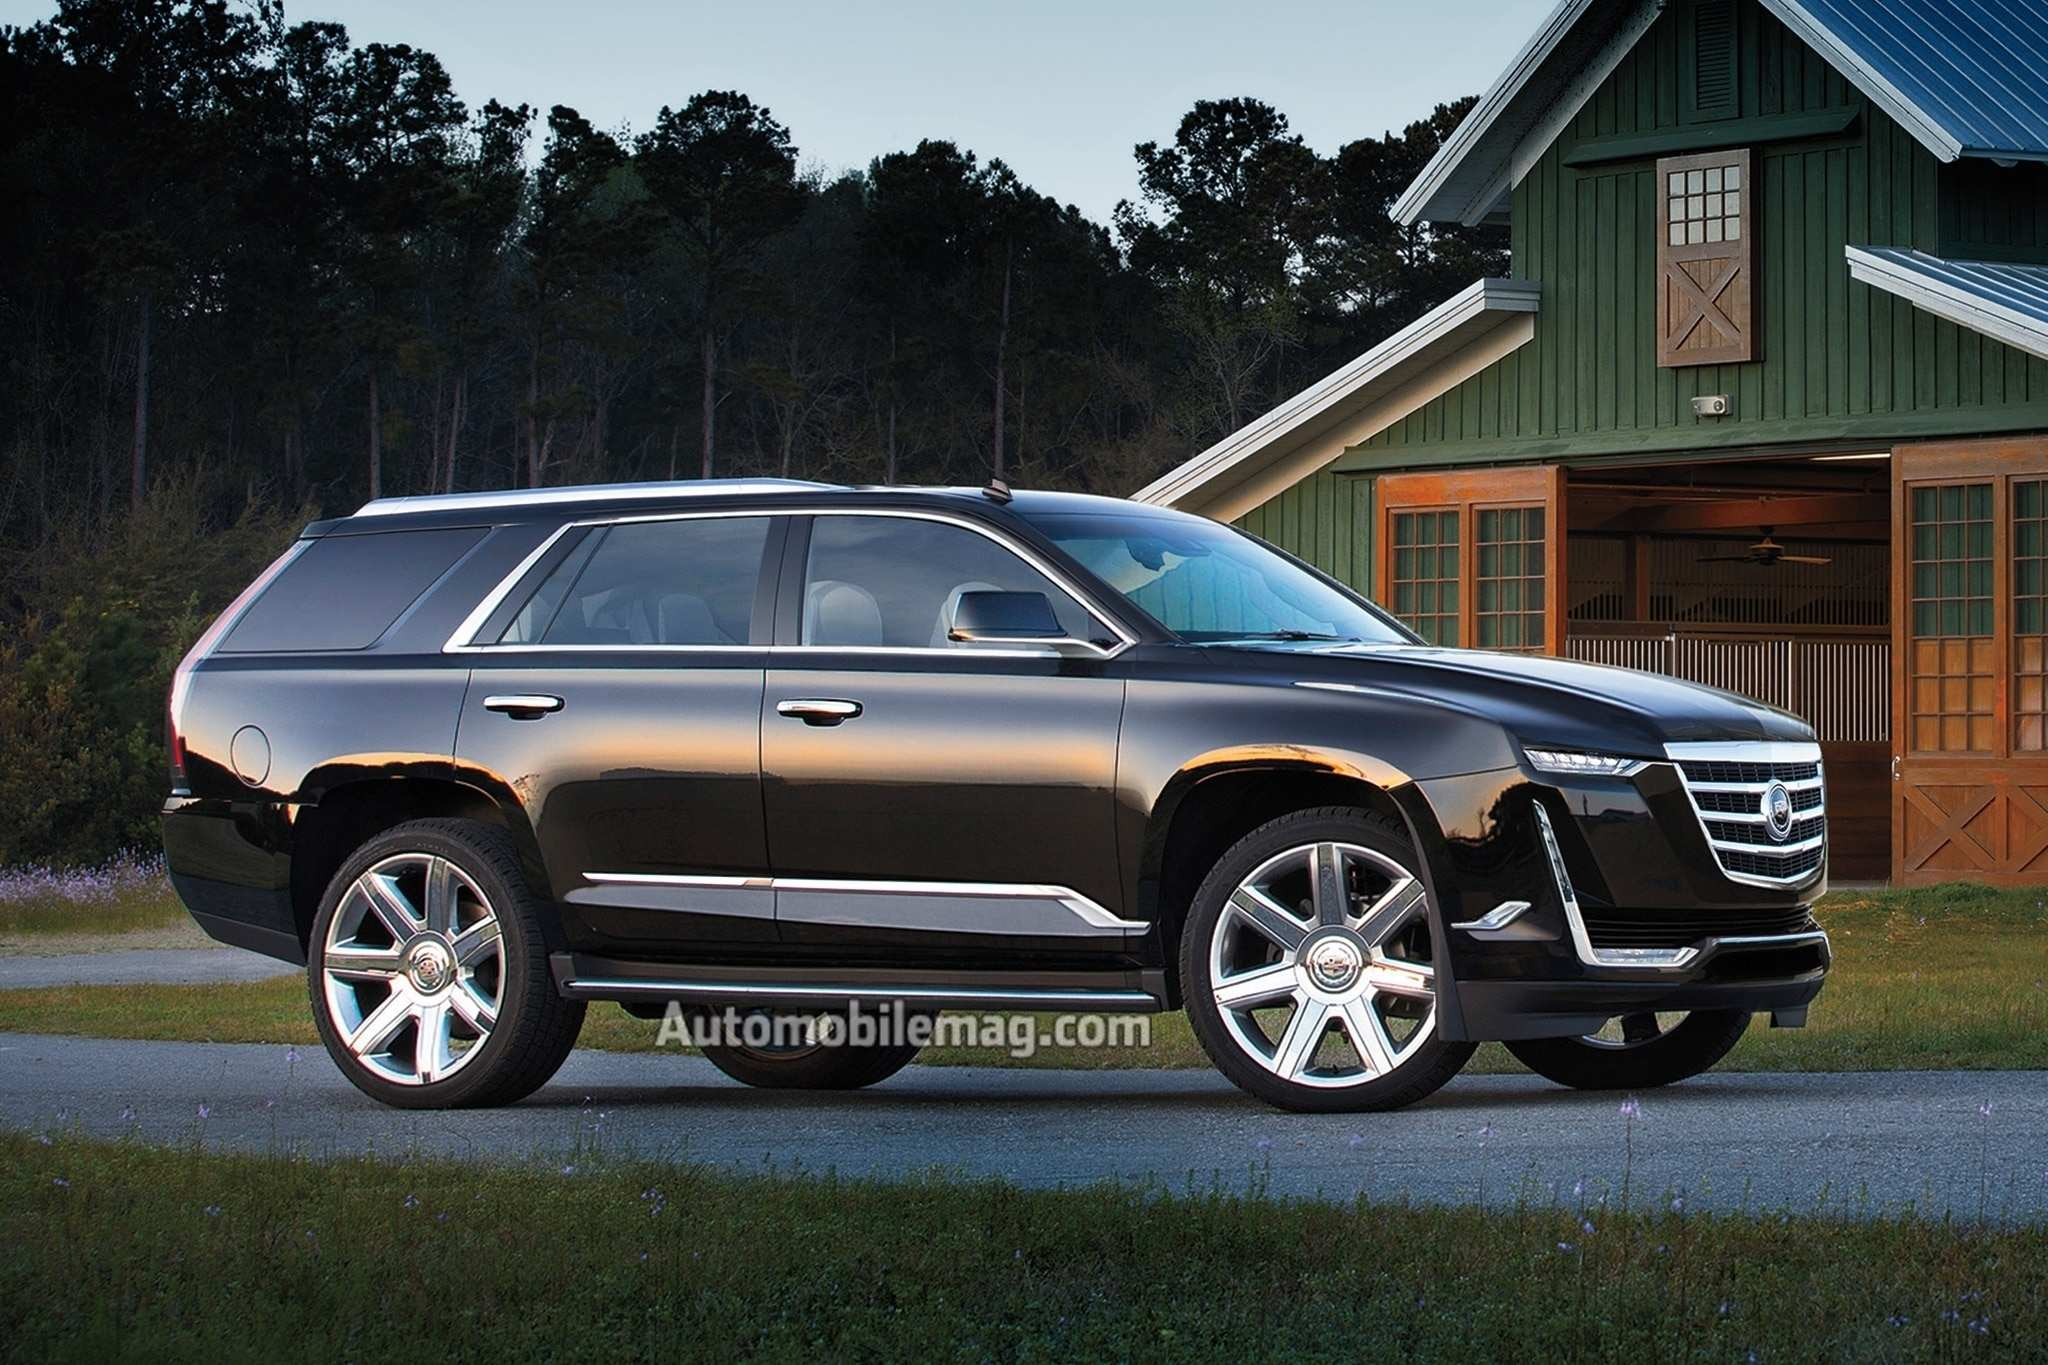 28 All New 2020 Chevrolet Tahoe Release Date Price And Release Date